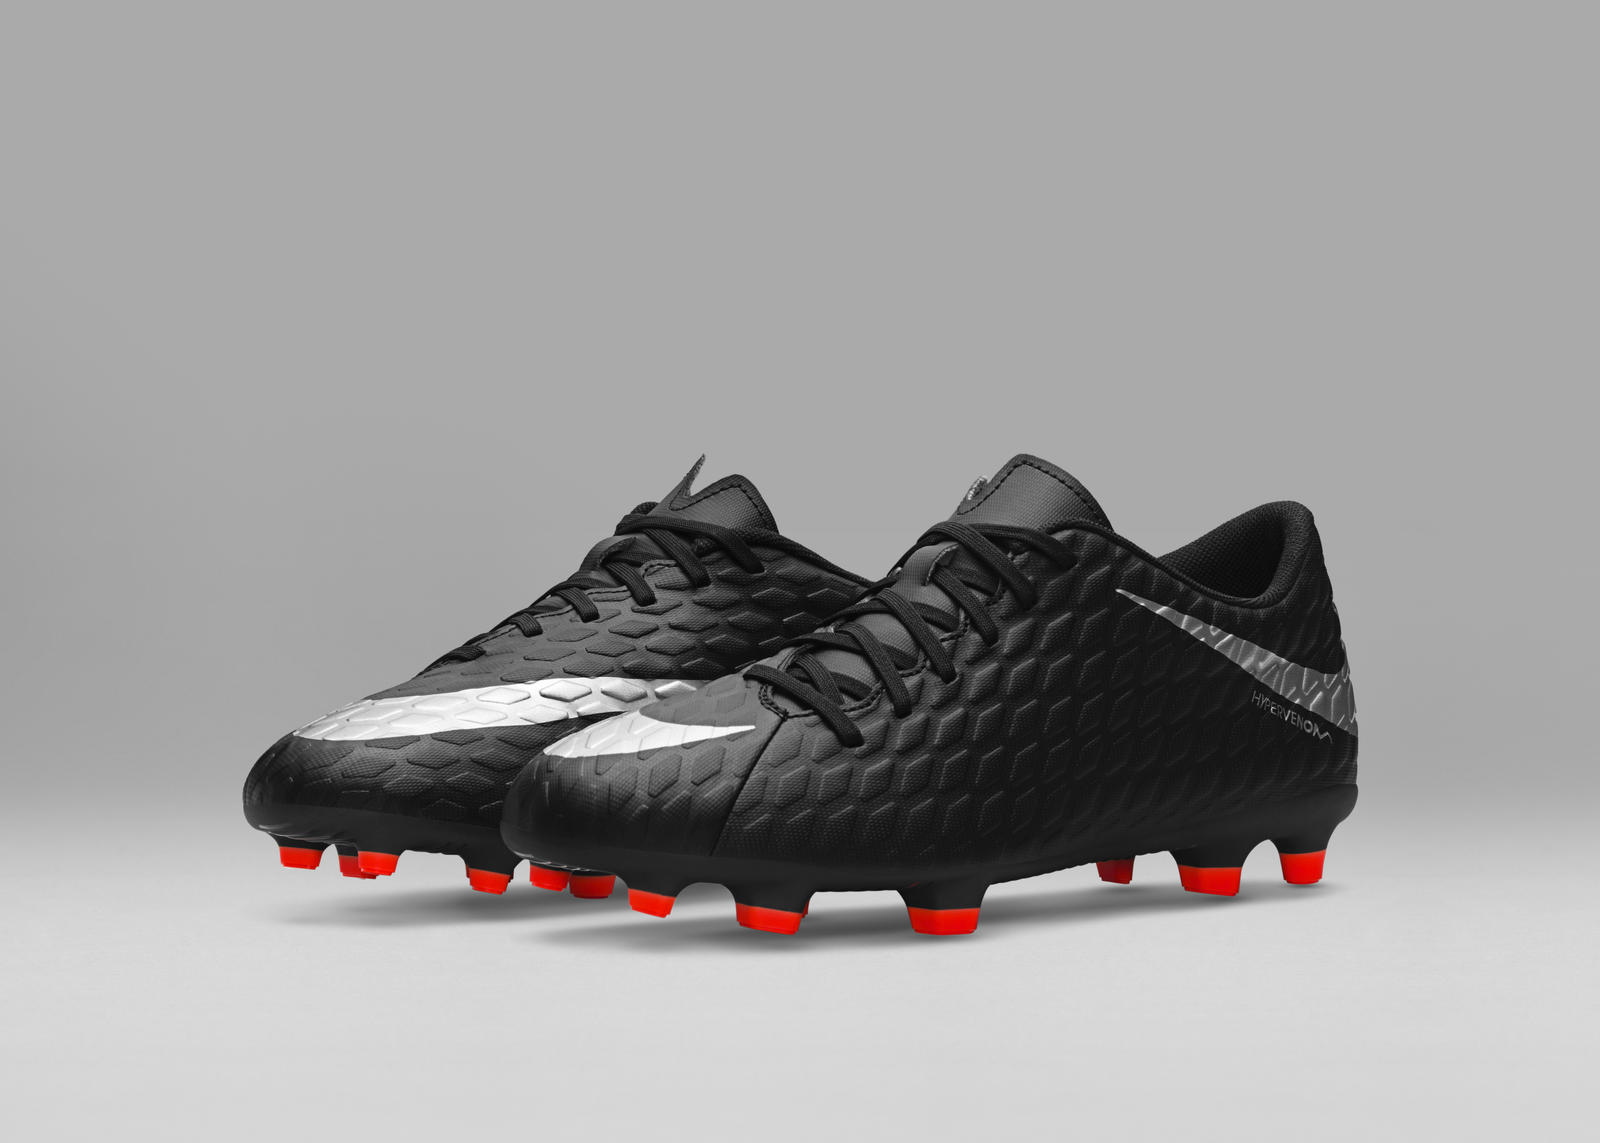 Sp17 gfb hypervenom 3 black 852547 001 hypervenom phade fg 5 8 rectangle 1600